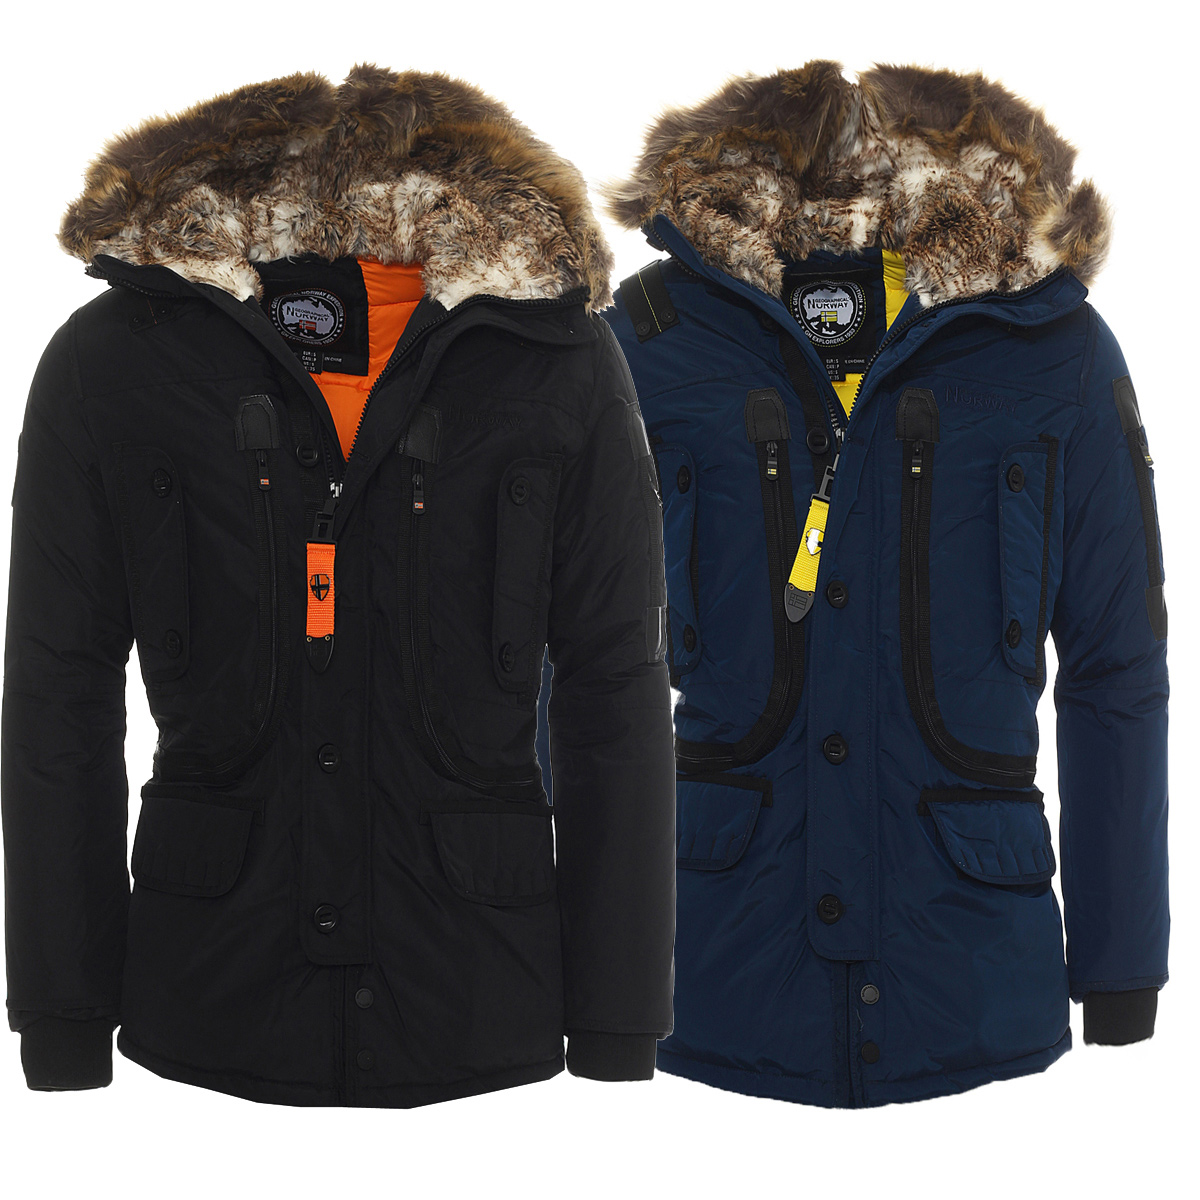 geographical norway warm lined alaska men 39 s winter jacket parka new ebay. Black Bedroom Furniture Sets. Home Design Ideas